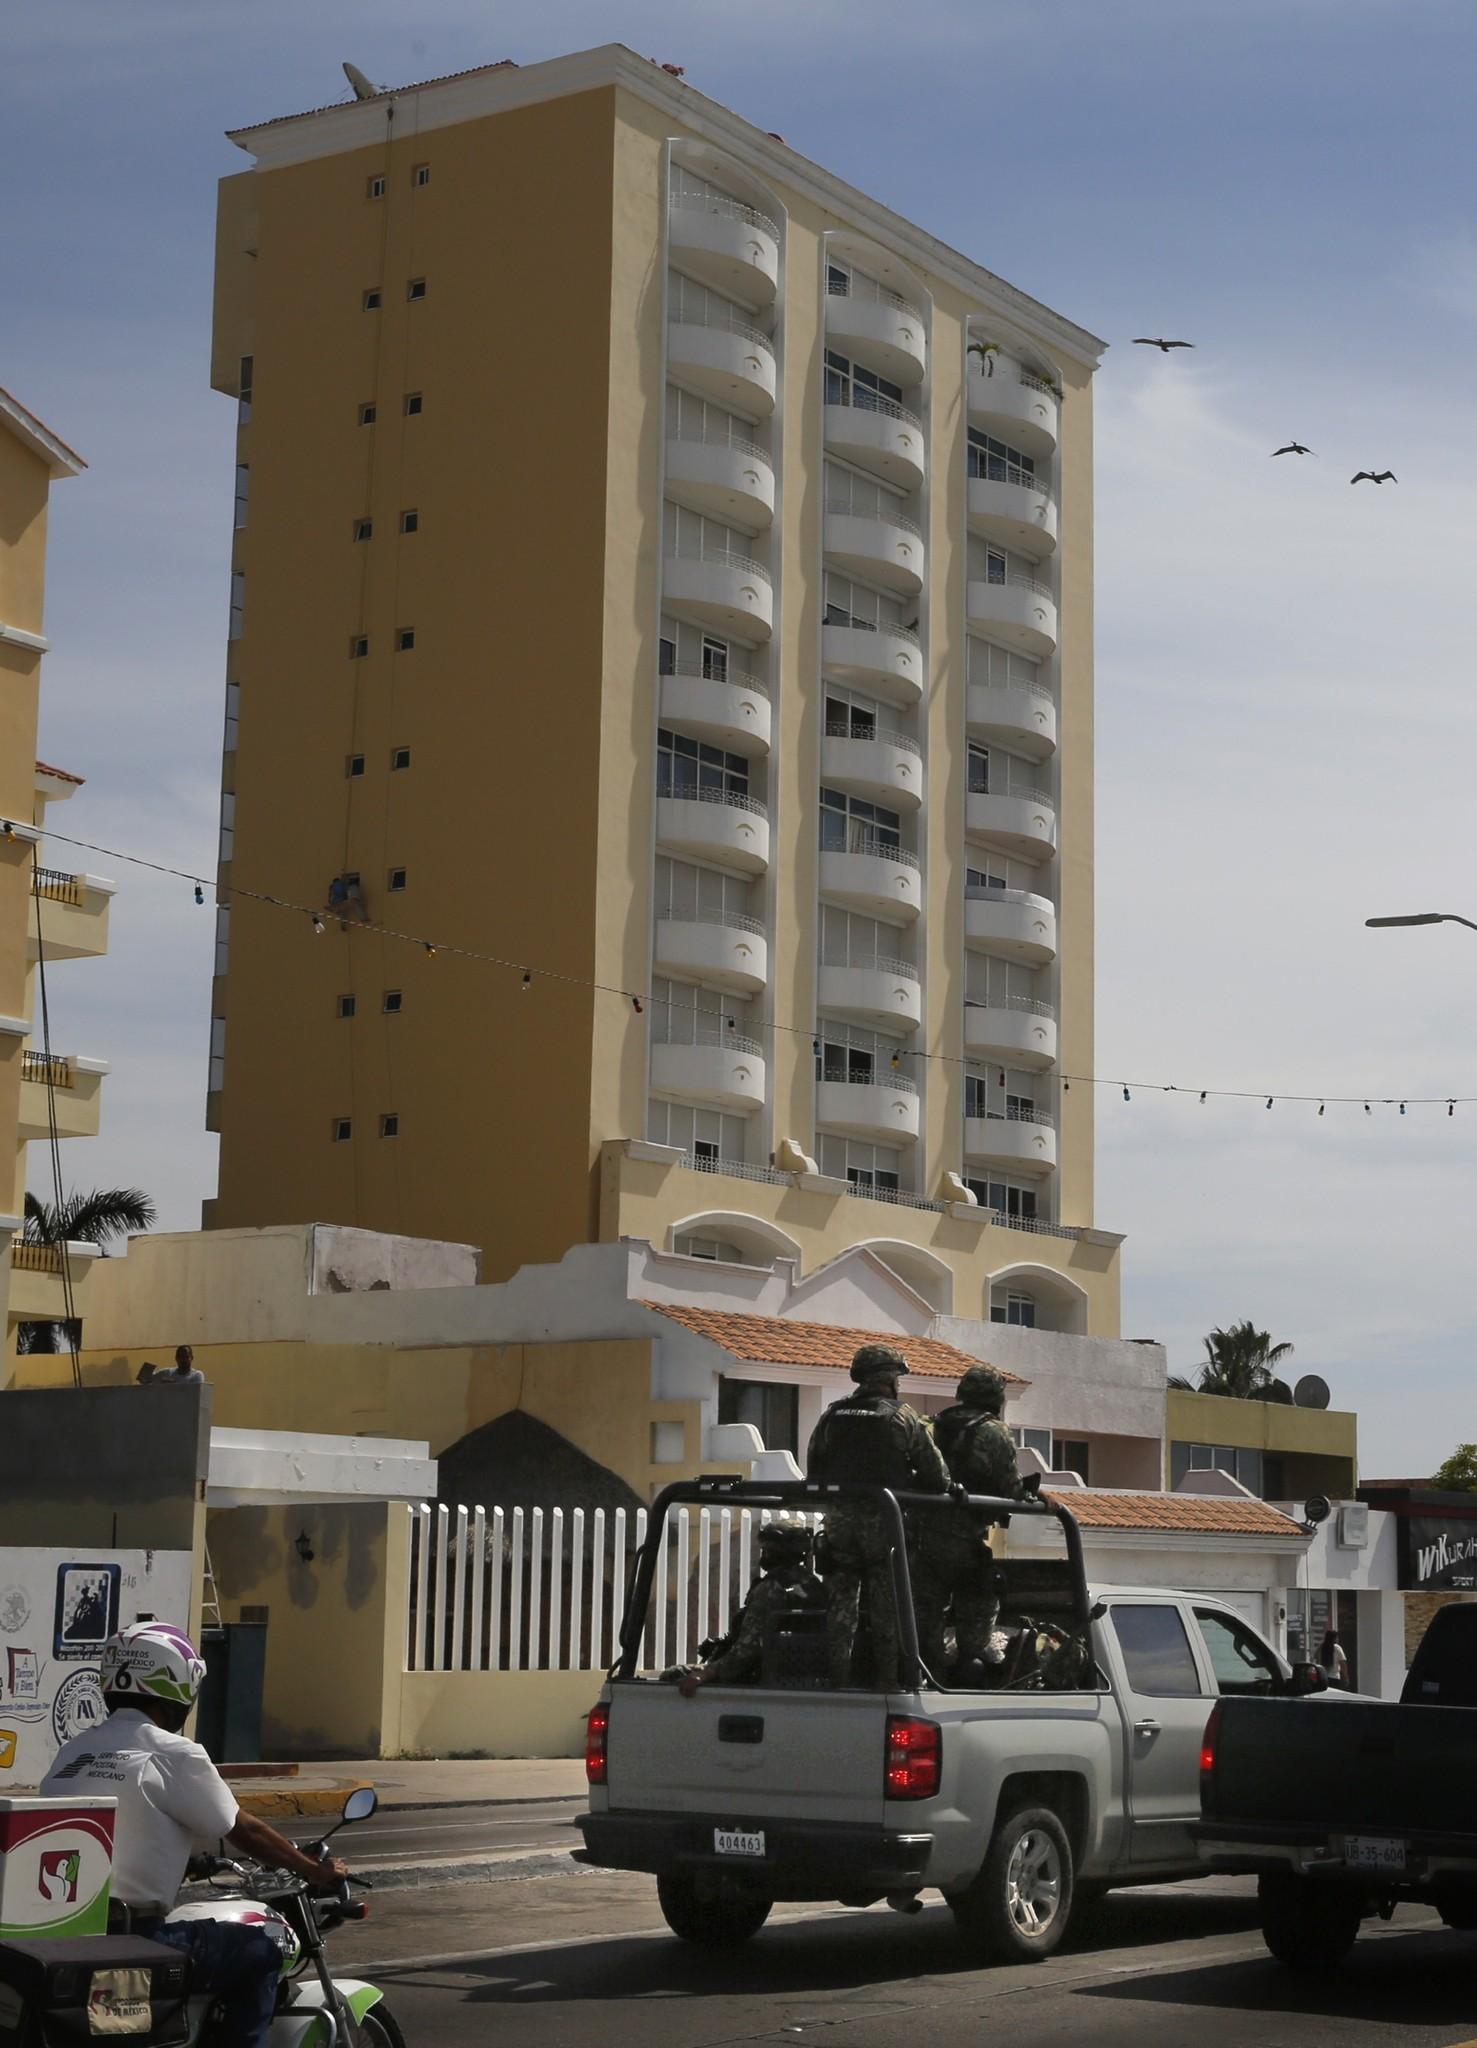 "Inside the condo where Joaquin ""El Chapo\"" Guzman was captured - Condo in Mazatlan, in Sinaloa state"